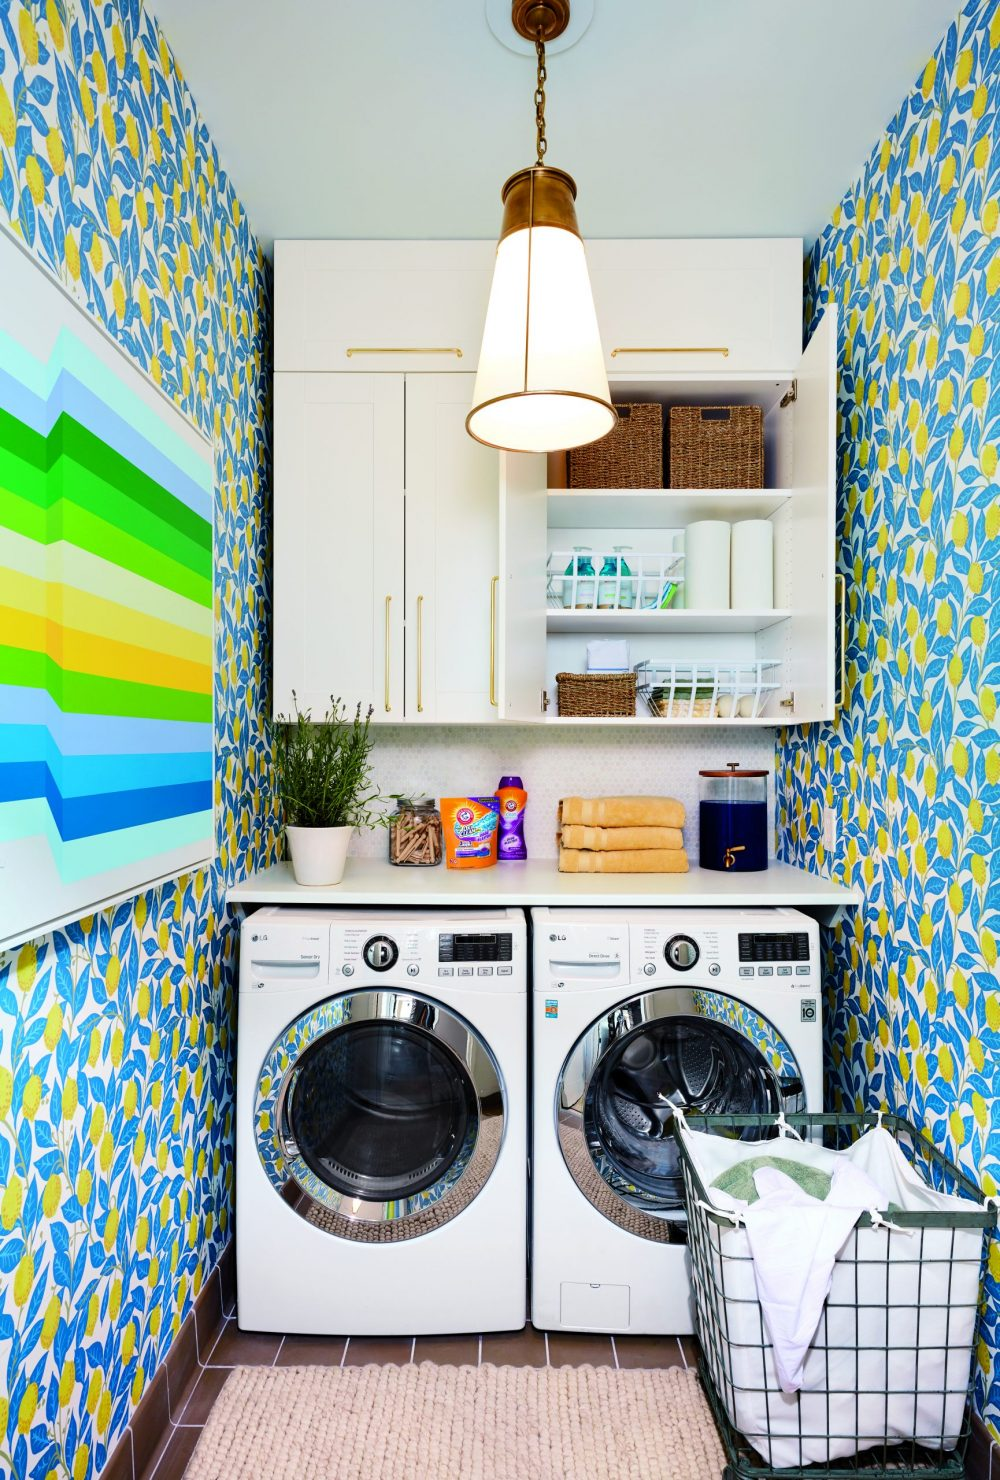 NEAT Organized Laundry room with vibrant colors